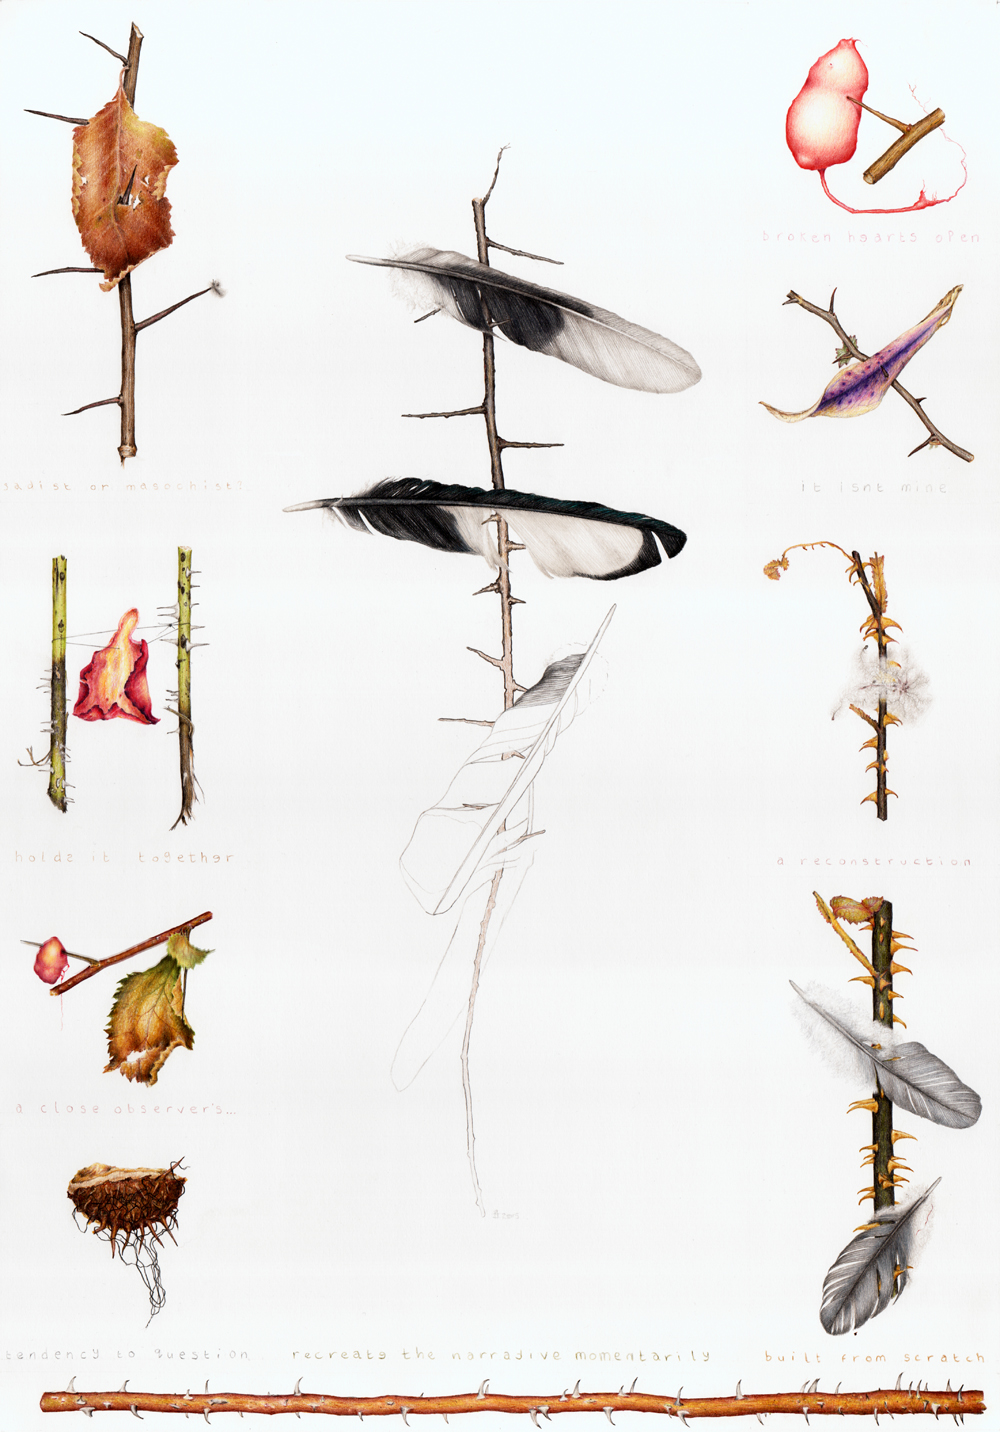 A colour pencil drawing of spiny twigs with small debris items (feathers, petals, leaves) impaled on them.